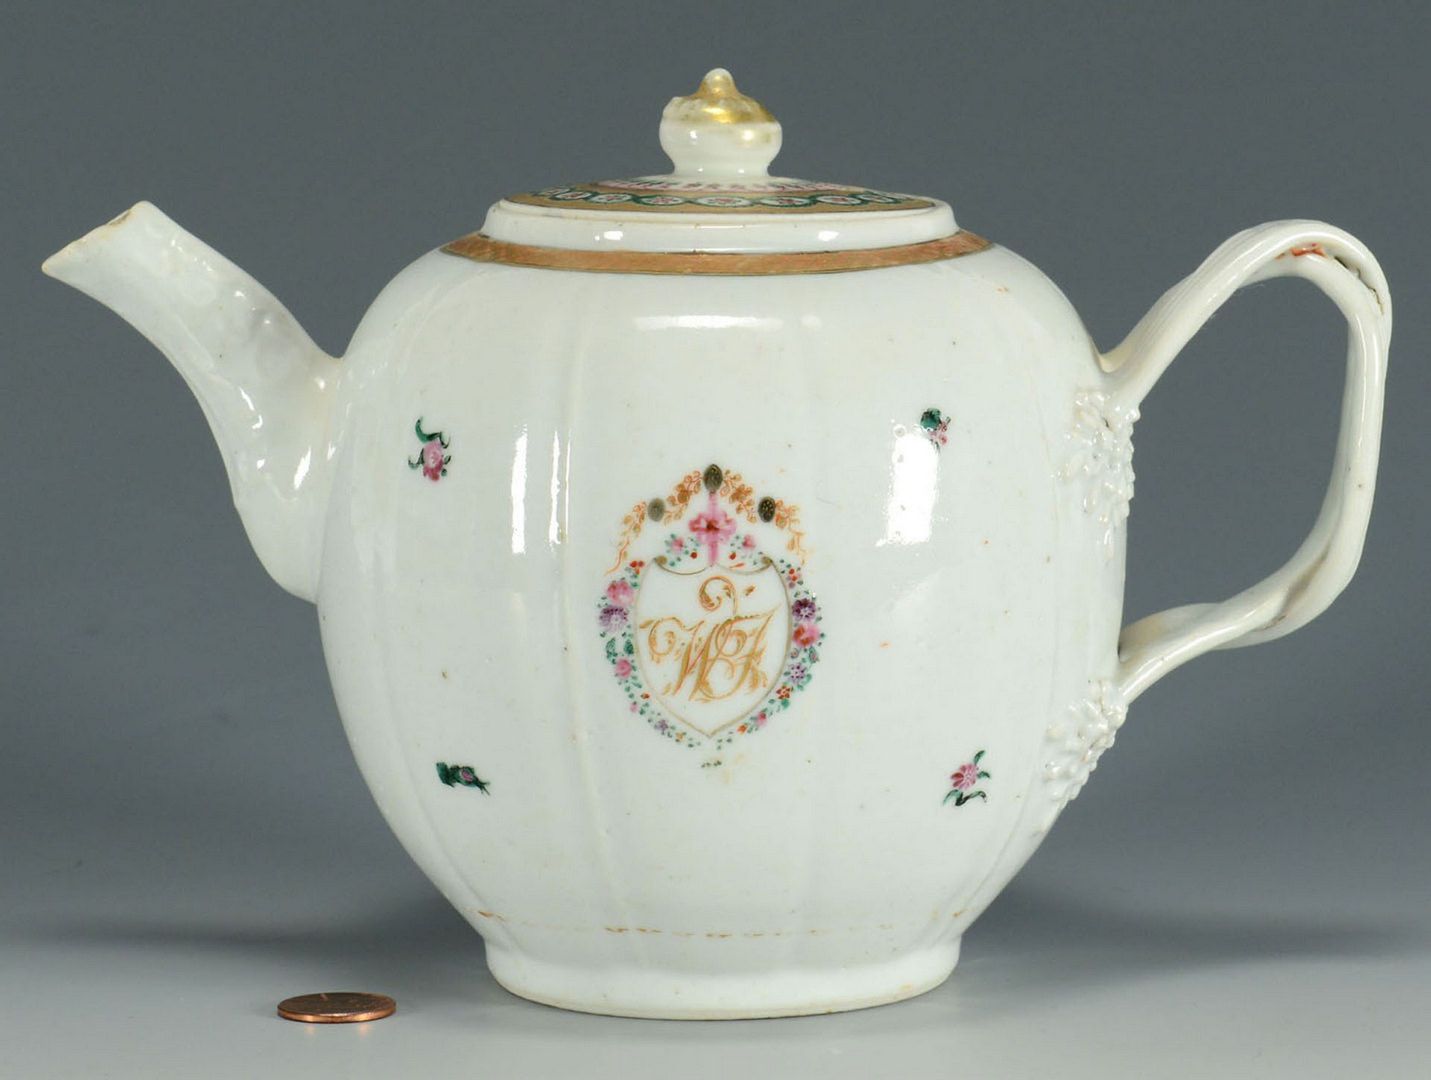 Lot 17: Chinese Export Armorial Teapot